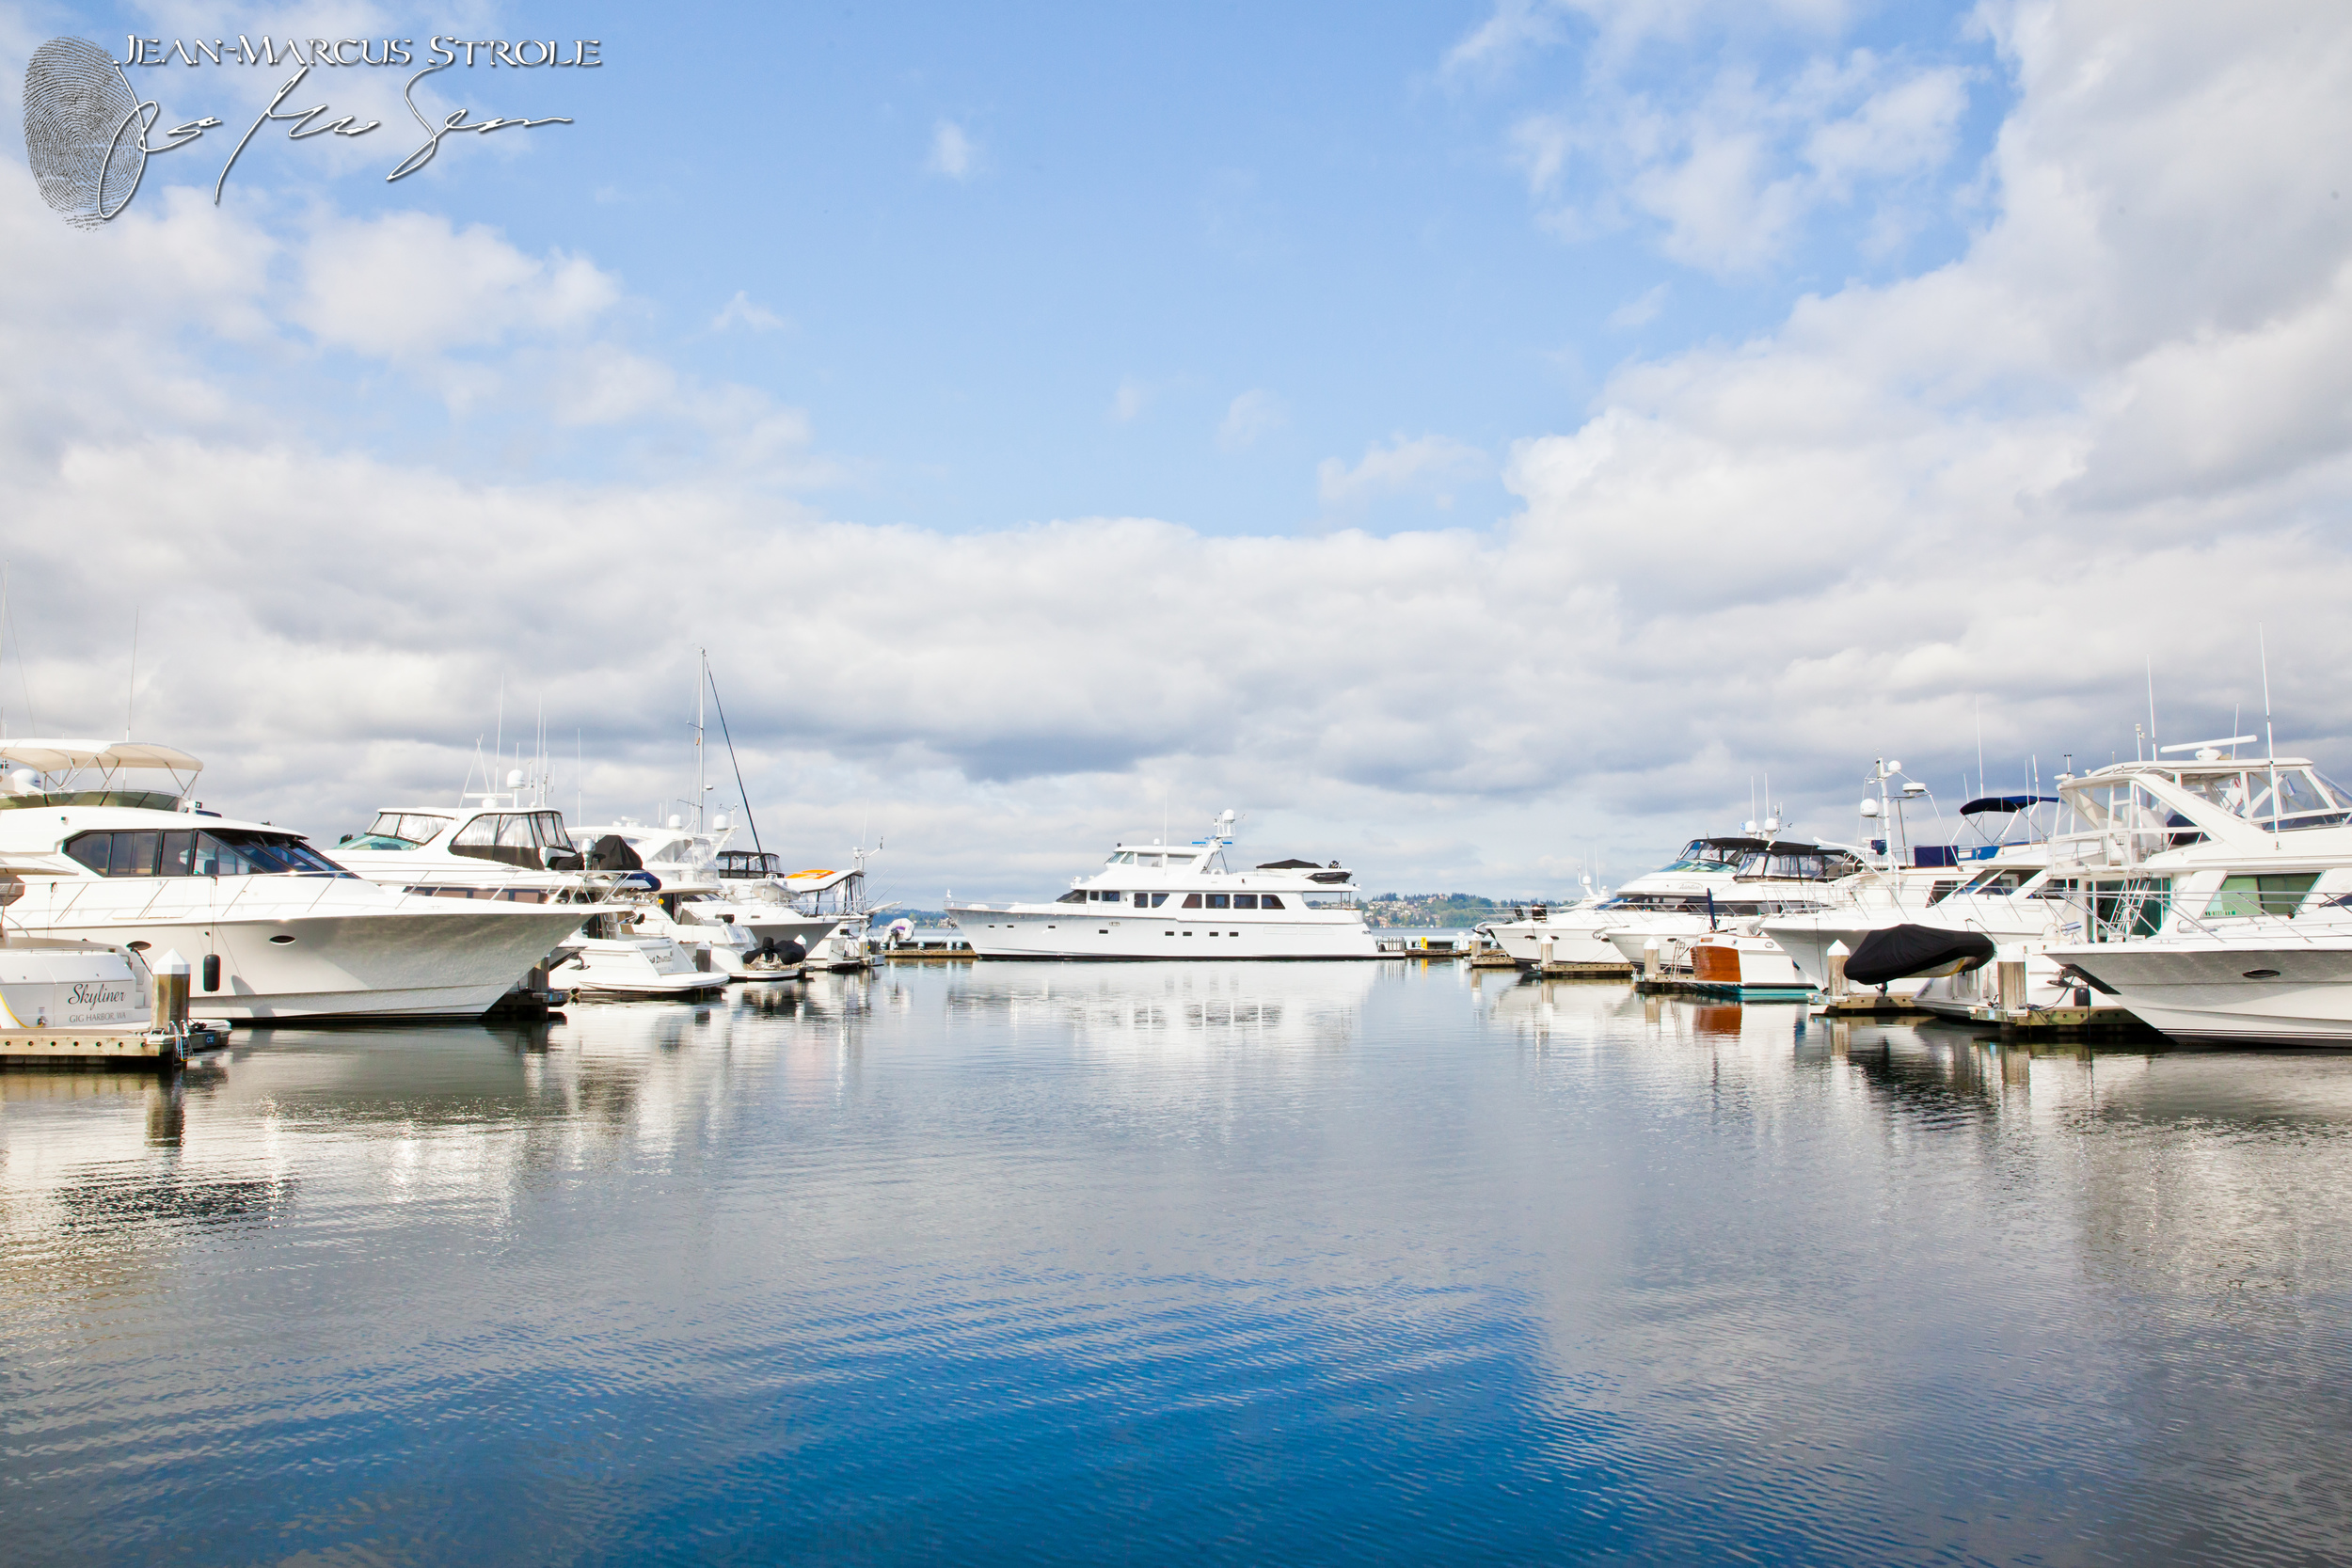 Carillon_Point_Waterfront_Adventures-Jean-Marcus_Strole_Photography-20.jpg